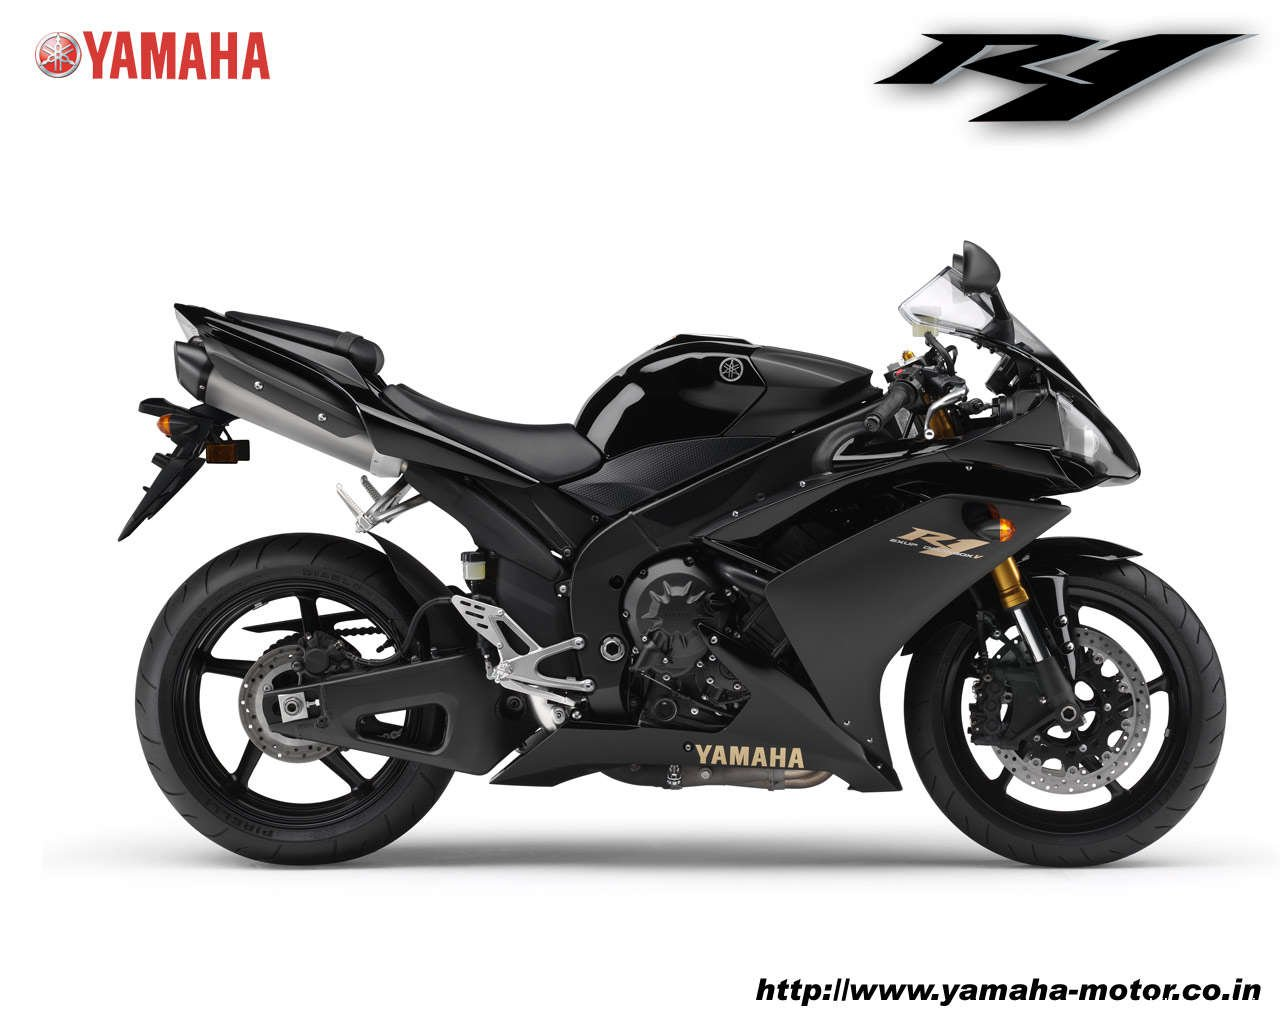 Yamaha yzf r1 exclusive wallpapers bikes4sale for Yamaha motorcycle dealers near me